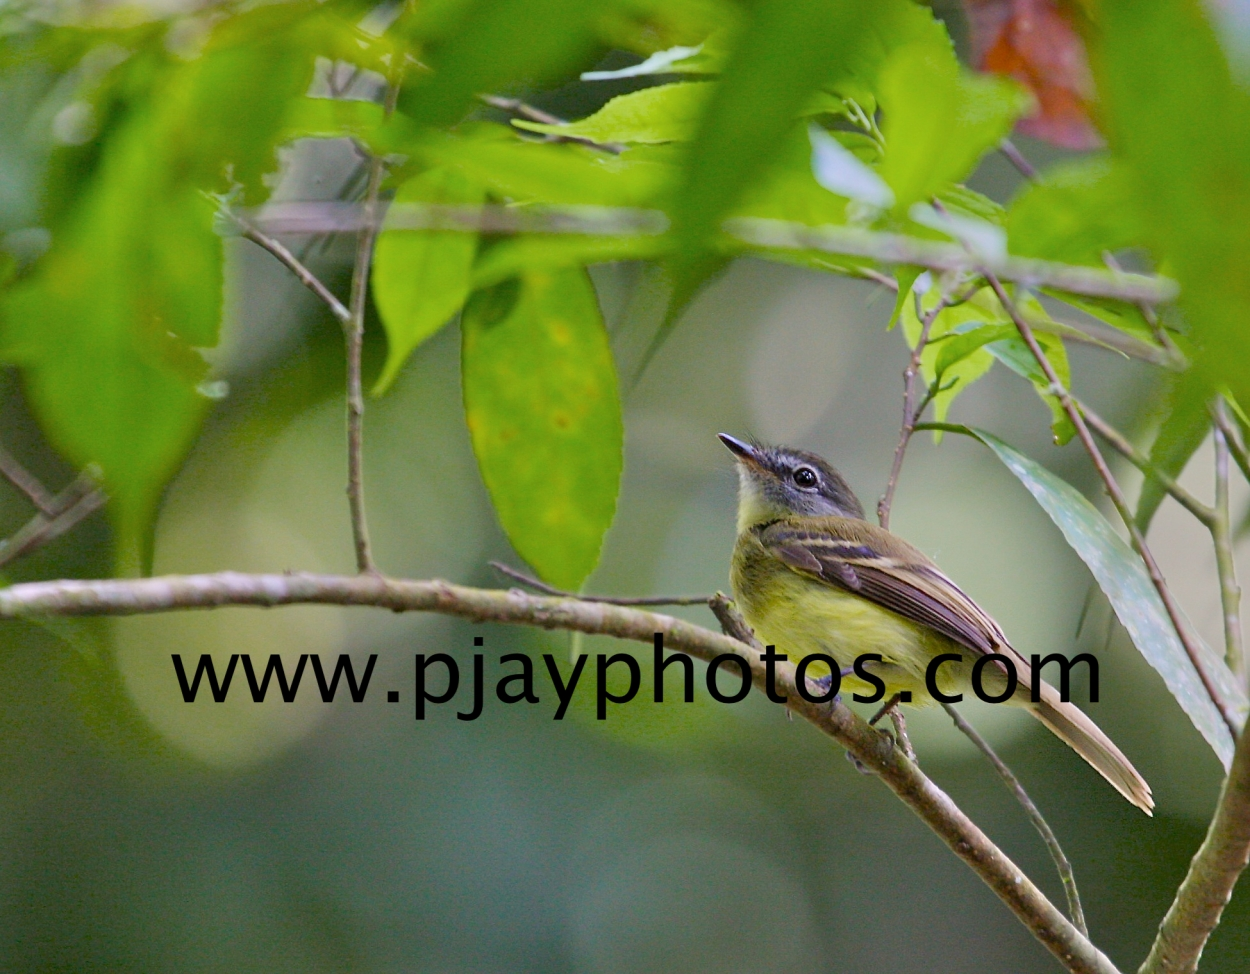 black-billed flycatcher, tyrant flycatcher, flycatcher, bird, colombia, nature, wildlife, photograph